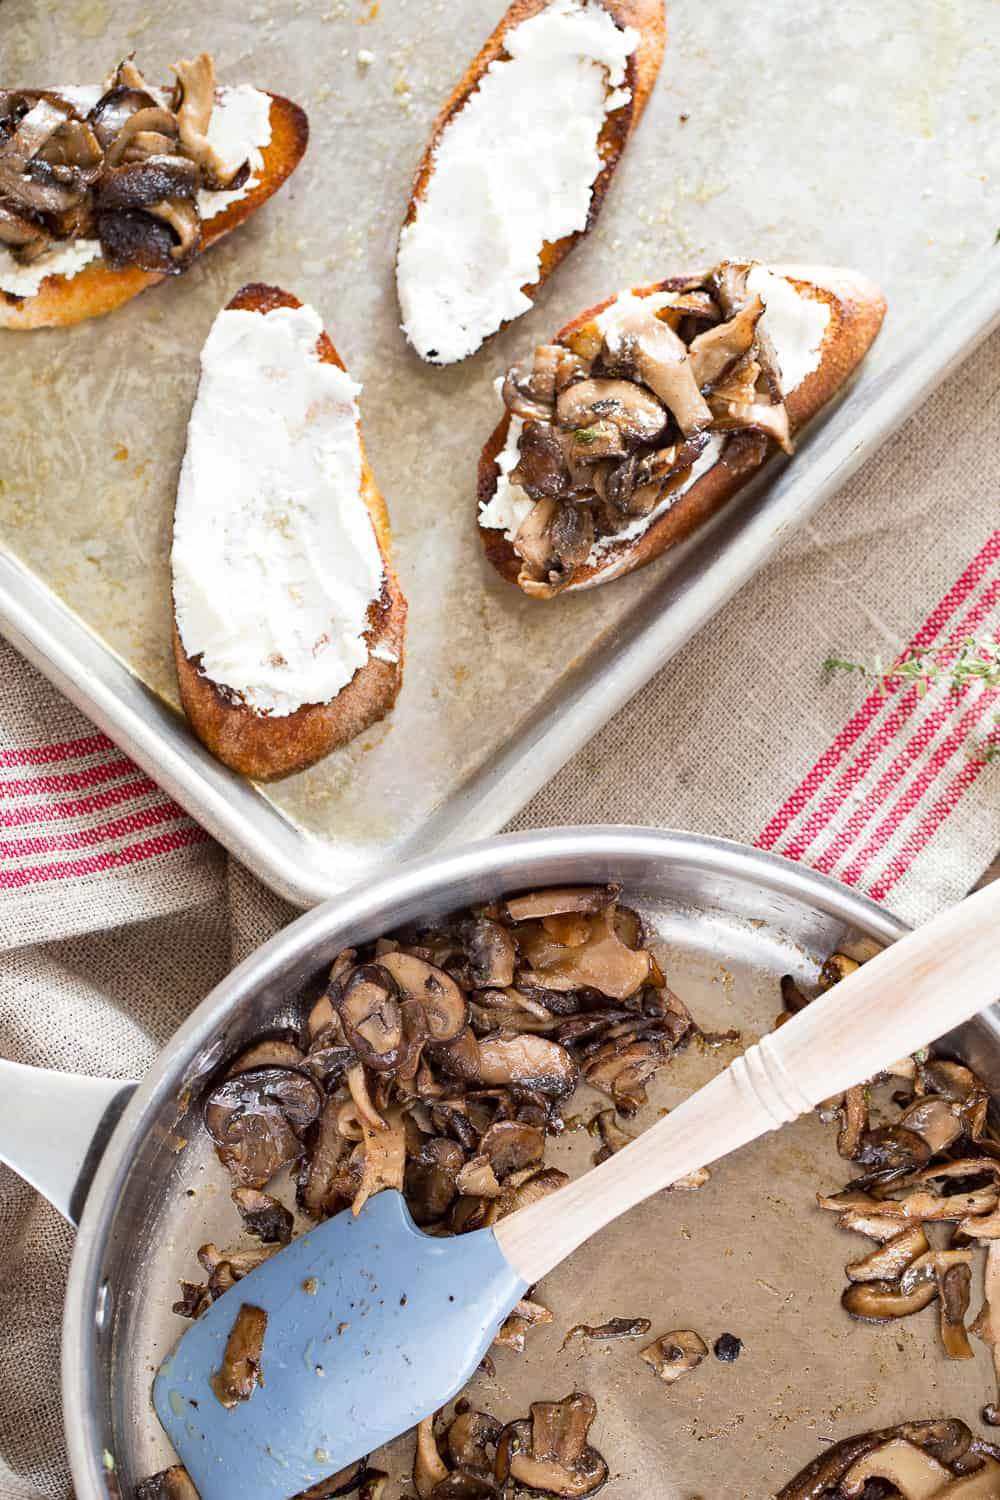 How to make mushroom toast